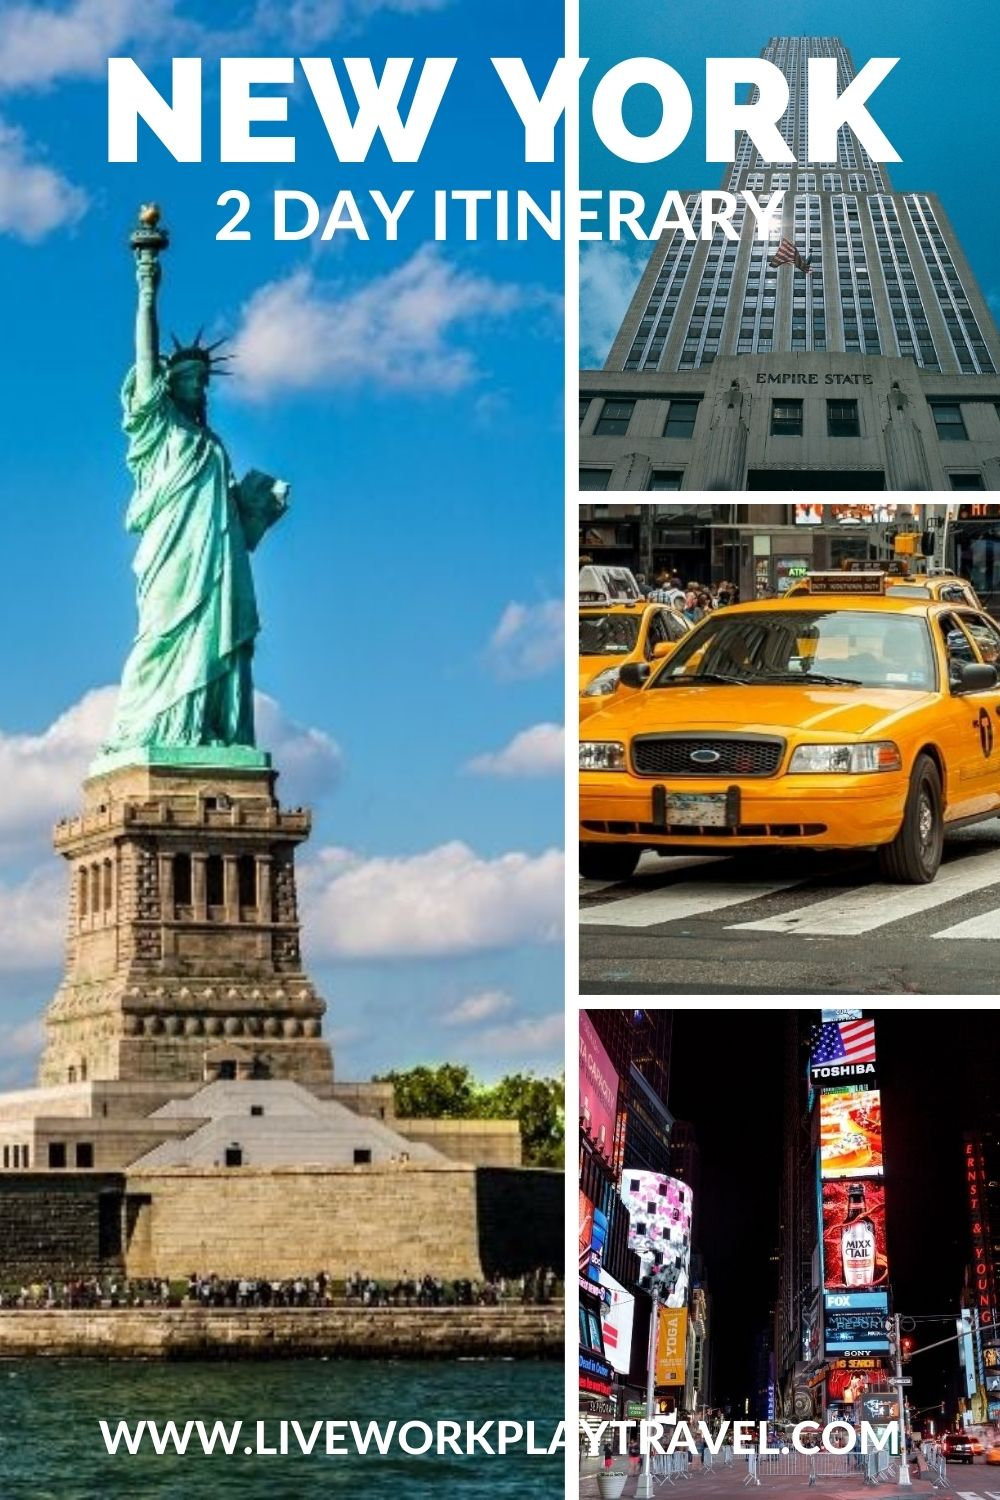 New York Pin. Statue Of Liberty, Yellow Cabs, Central Park, Times Square And The Empire State Building Are Just Some Iconic Things To See When In New York On A 2 Day Itinerary.